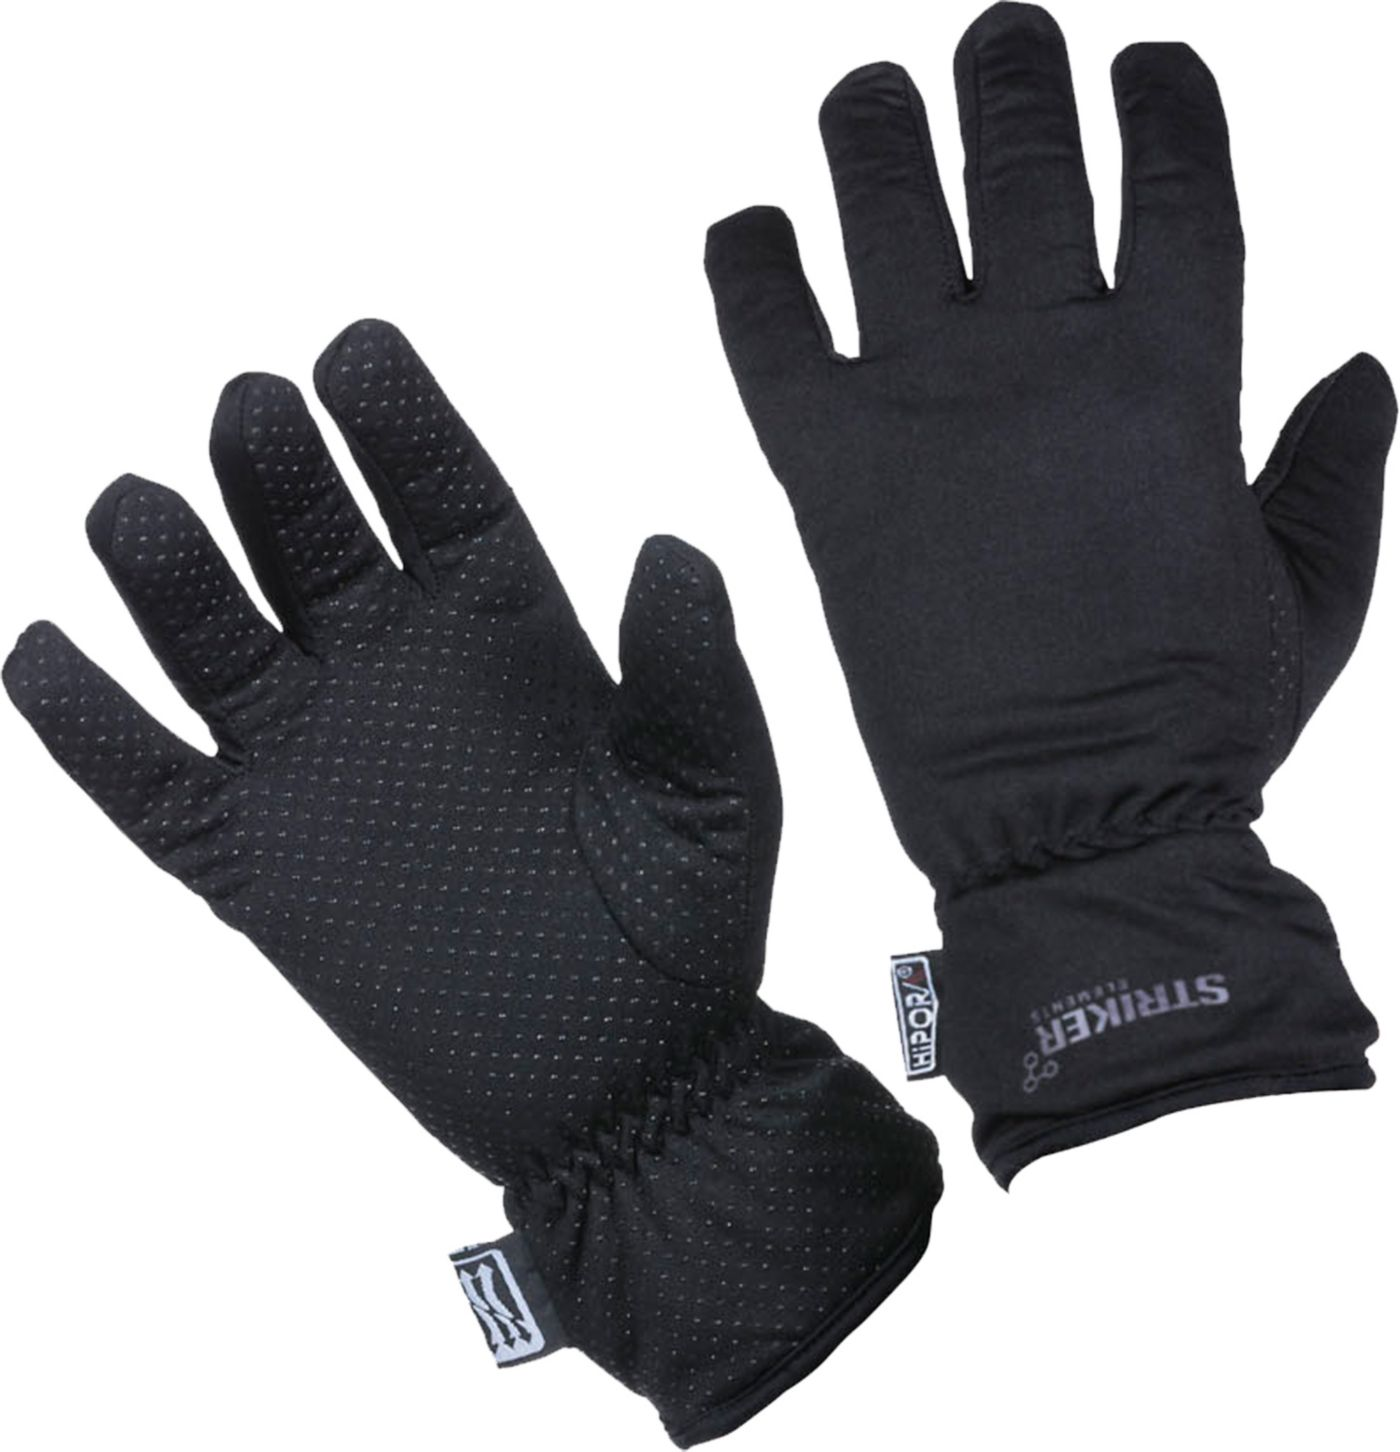 Striker Ice Adult Second Skin Gloves